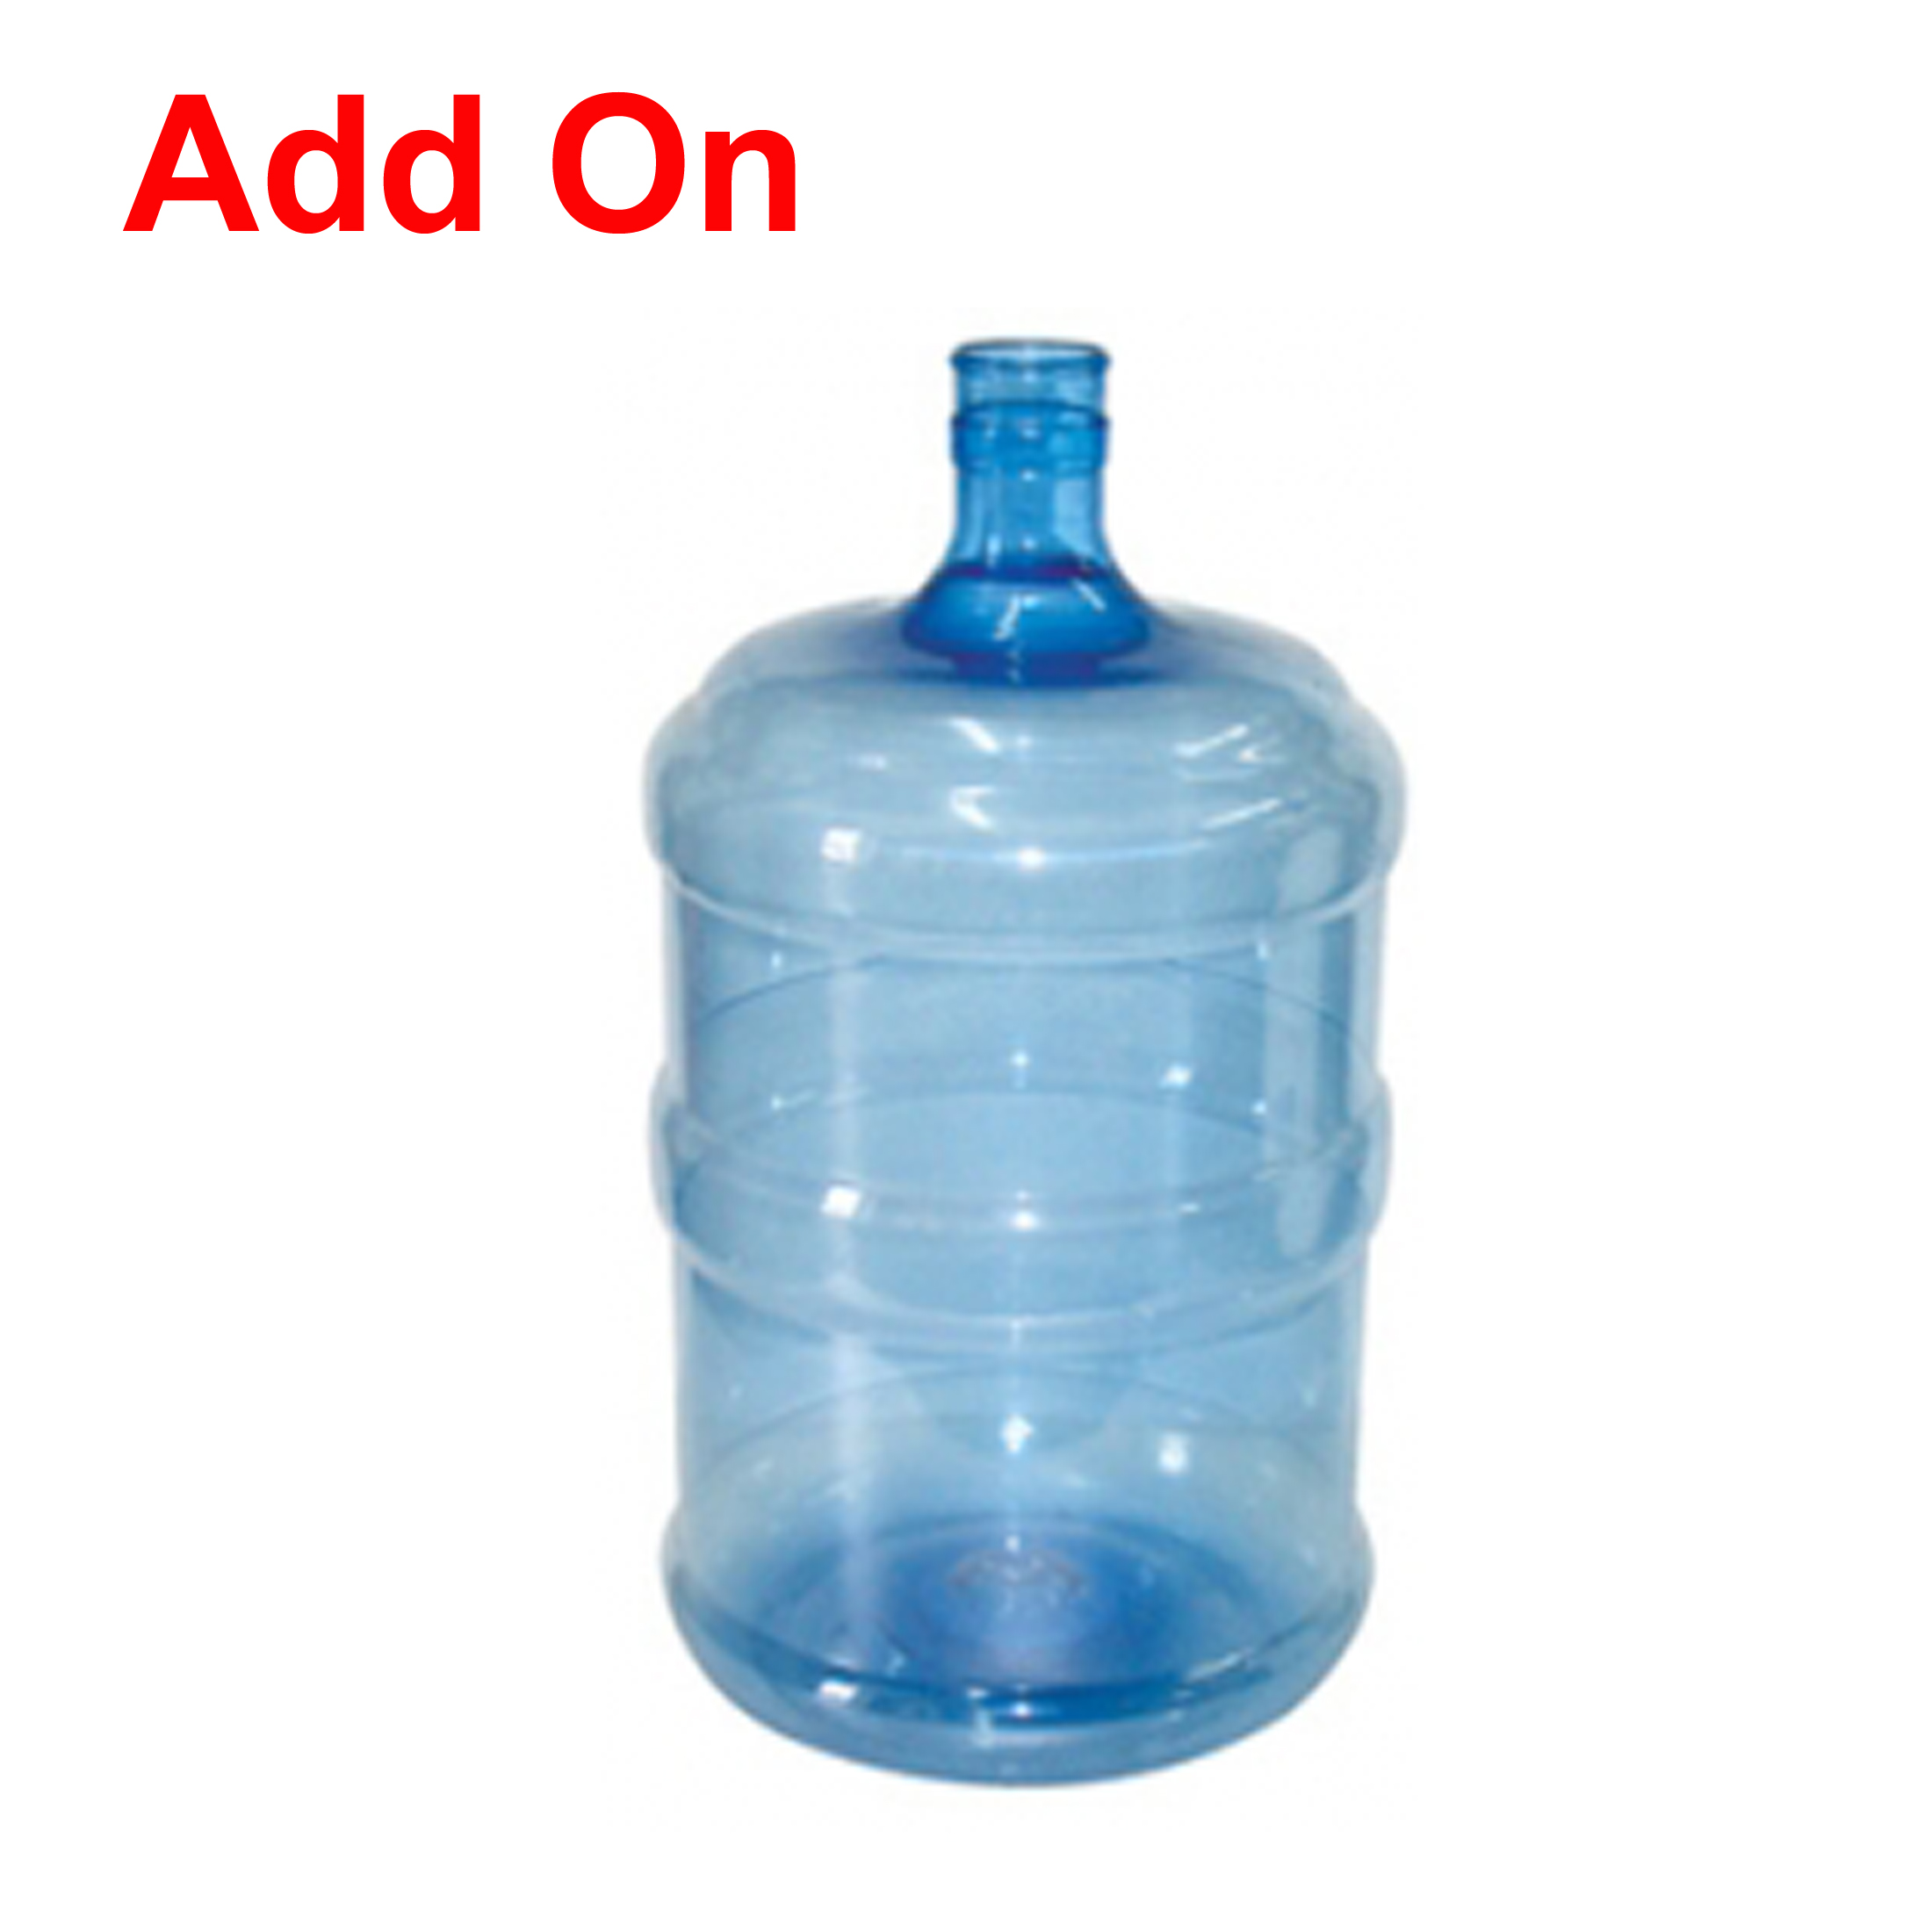 addon bottle